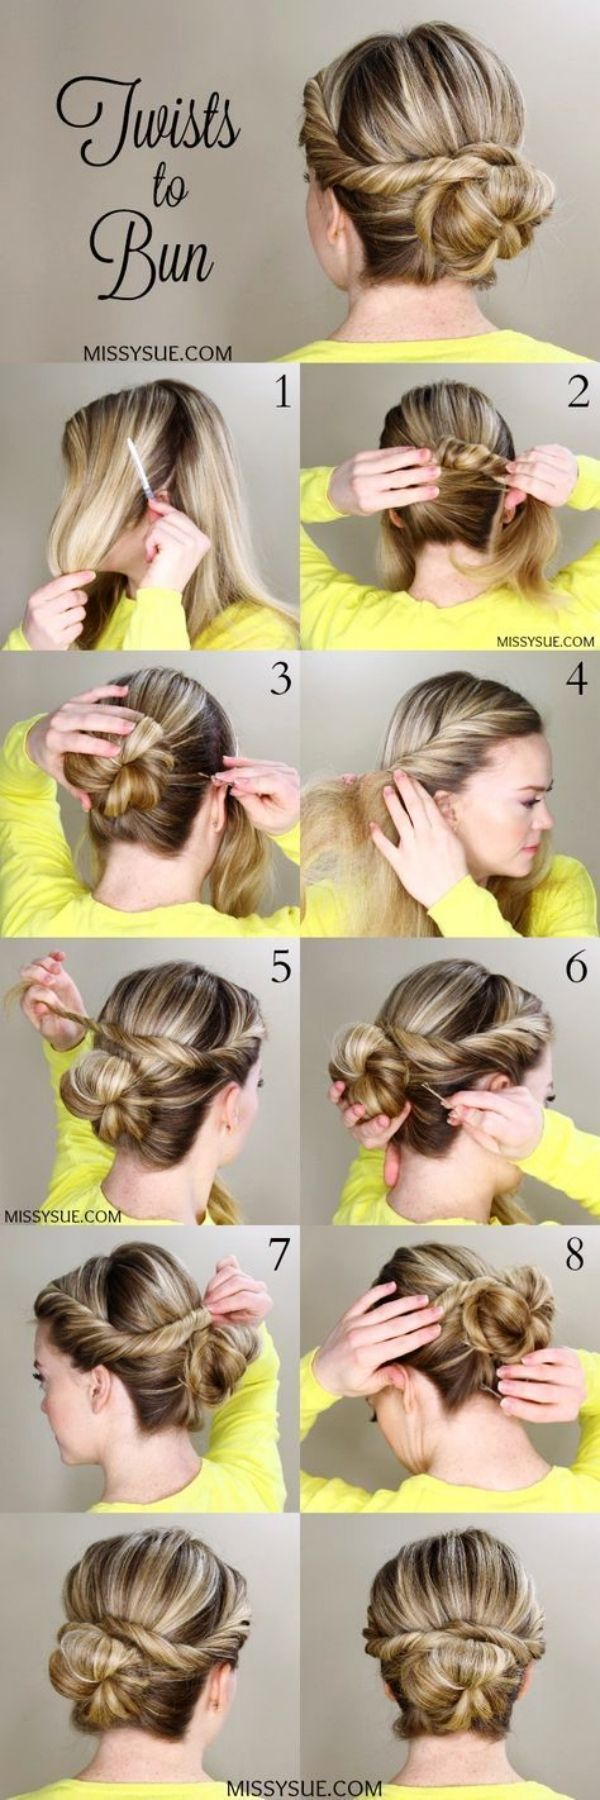 hairstyles that can be done in minutes hair pinterest